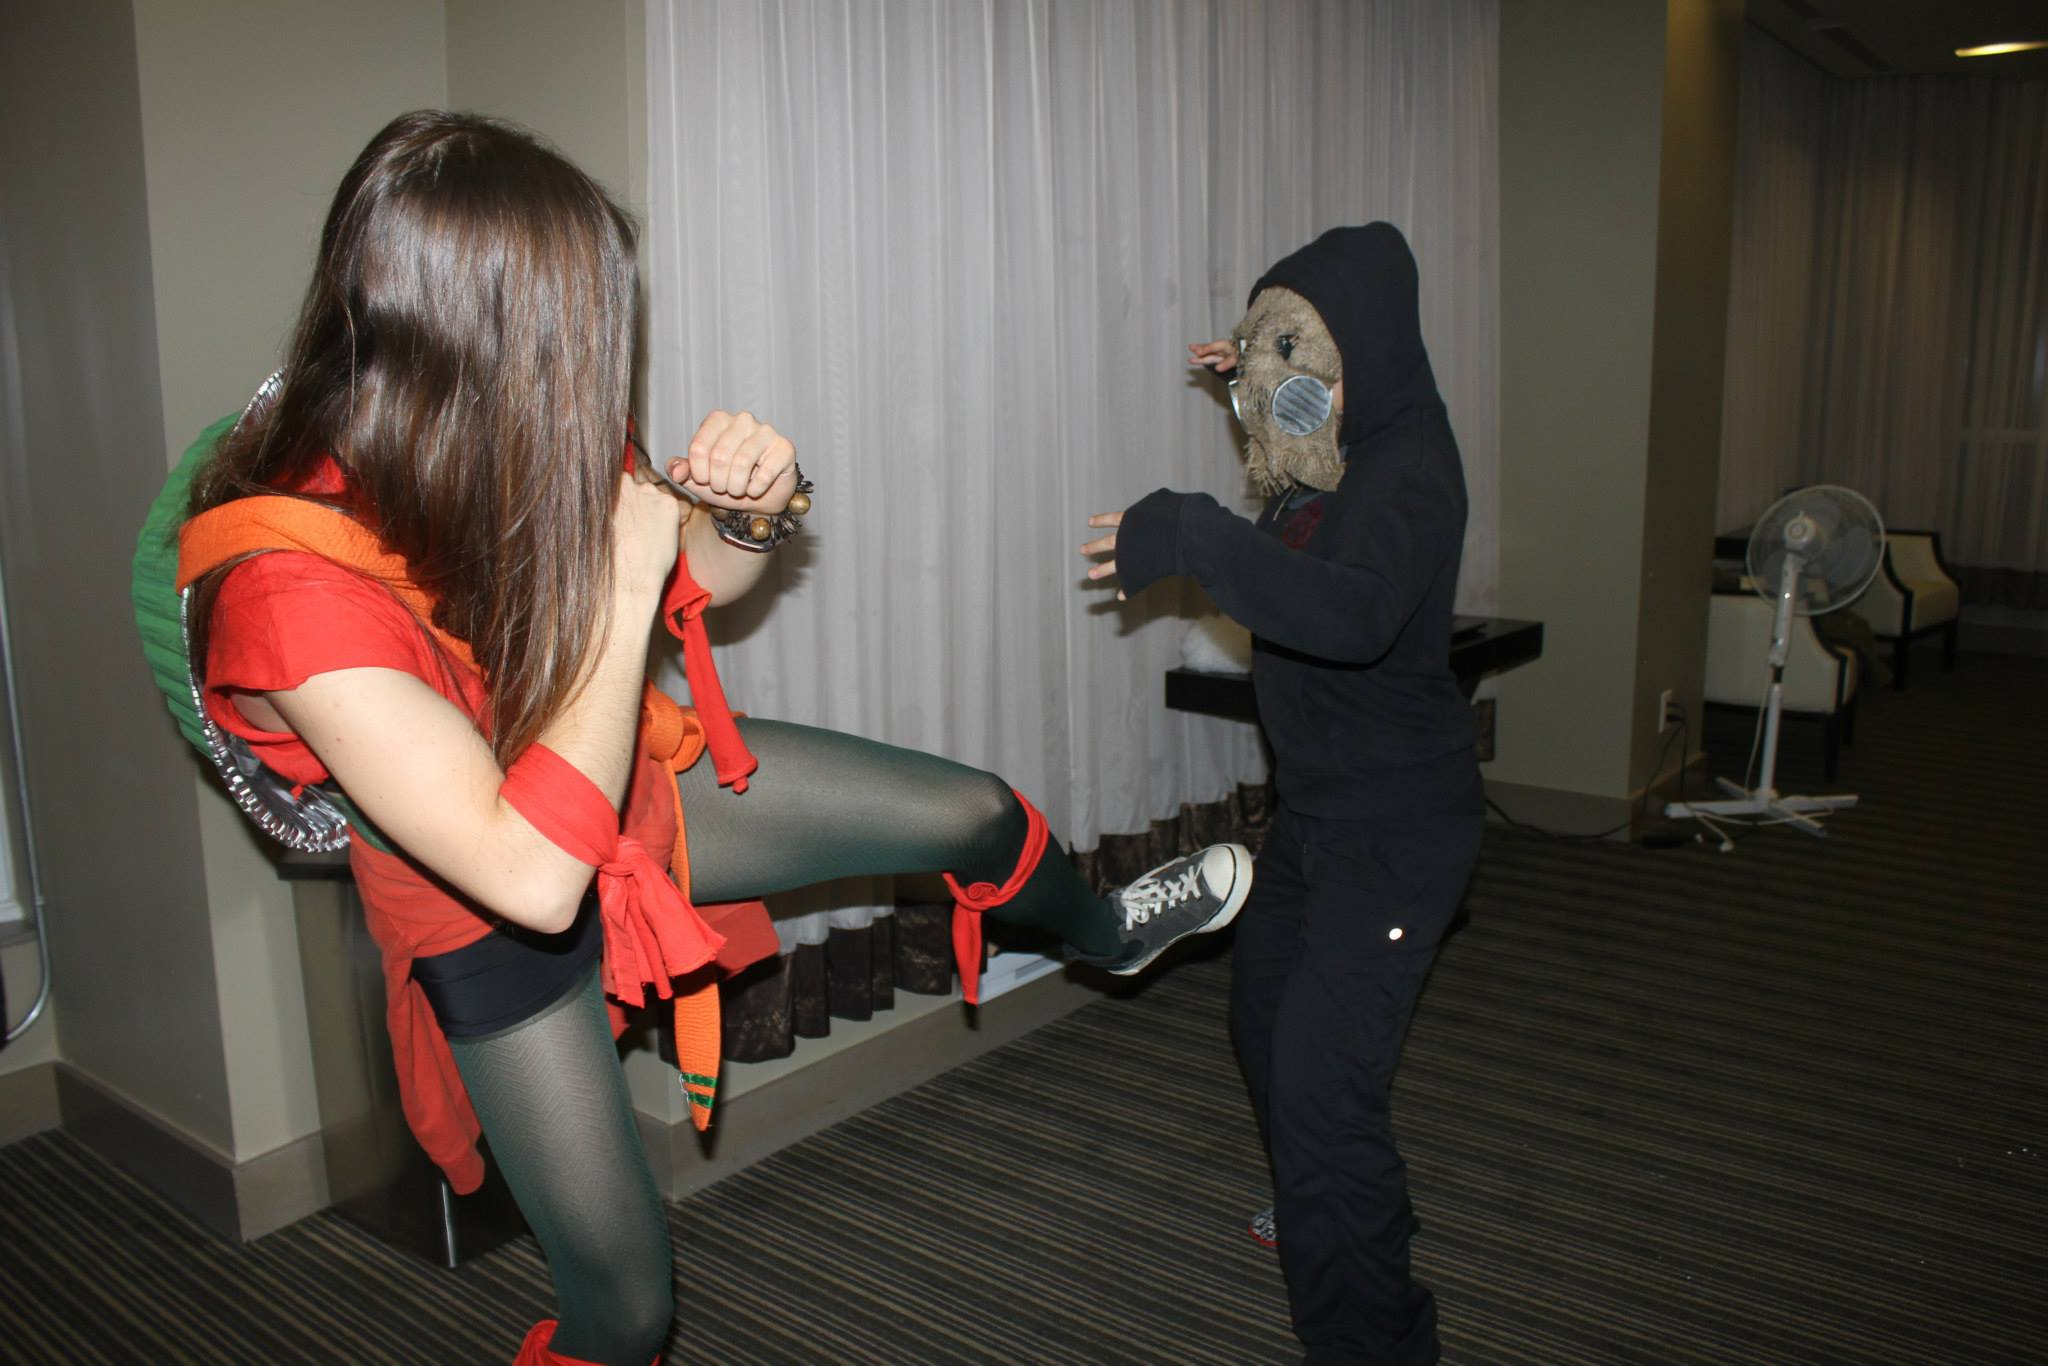 Girl in ninja turtle costume feigning a kick at someone dressed up in all black with a gas a mask -also in fighting stance.